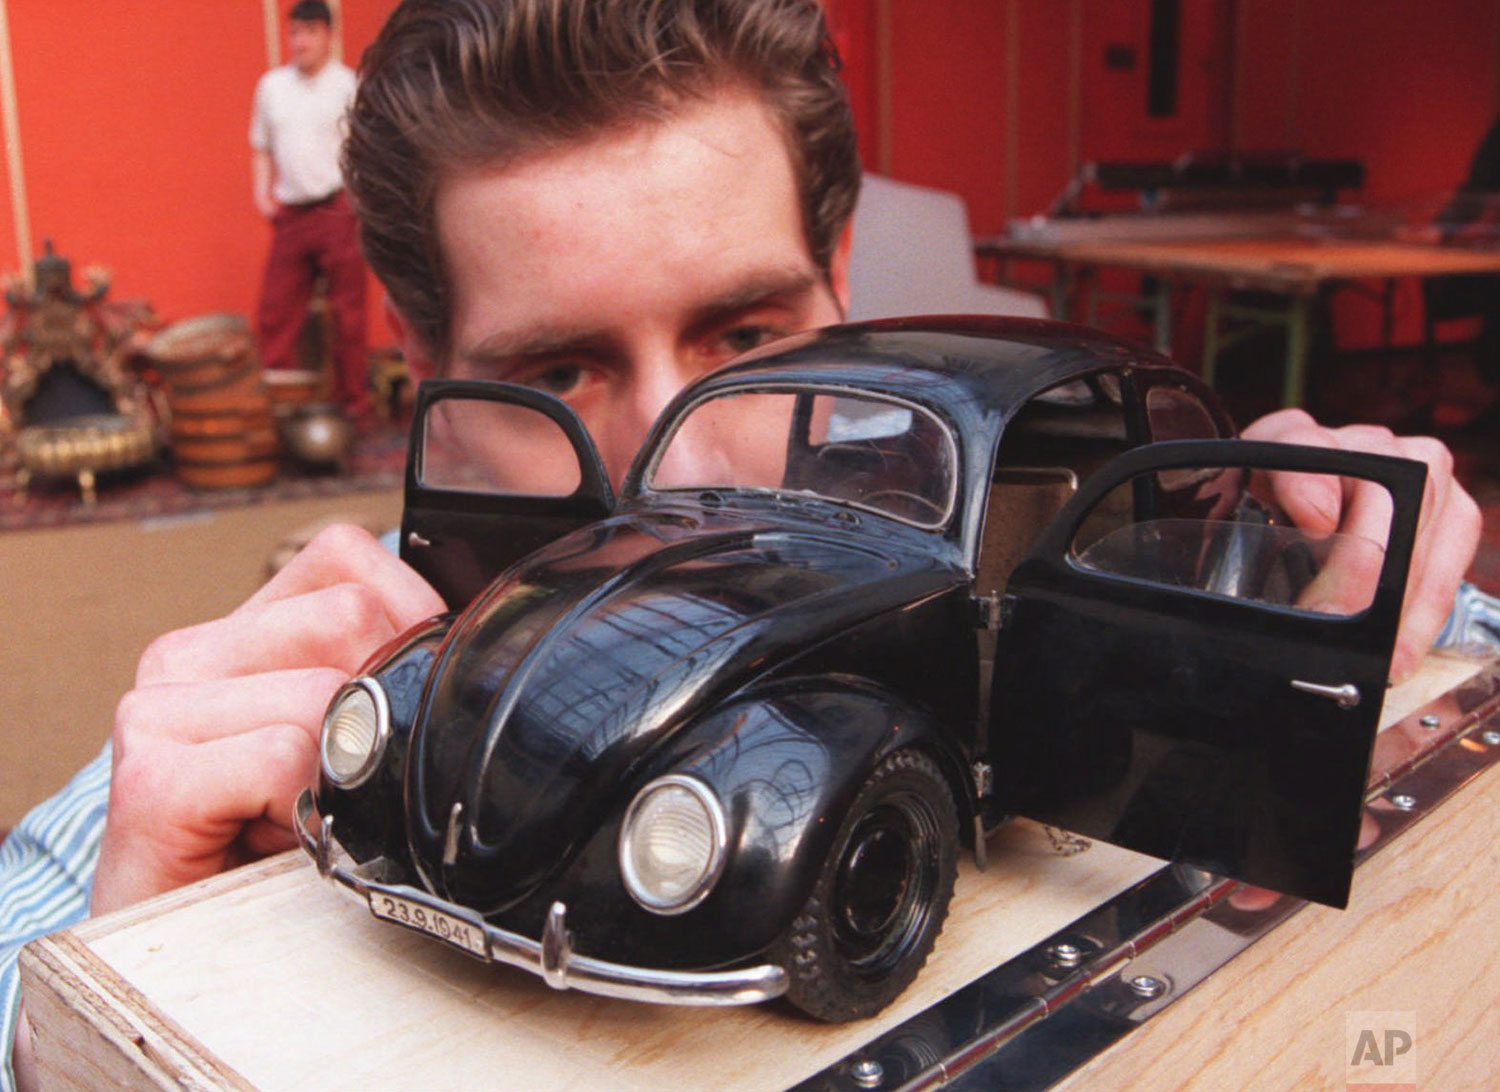 Christie's porter Patrick Fornara takes a last look at a 1938 model of an early VW Beetle car bought by the Stuttgart based Bosch company for 42,550 Pounds (US$ 65,101), at the auctioneer's west London headquarters, Feb. 29 1996. (AP Photo/Charles Miller)